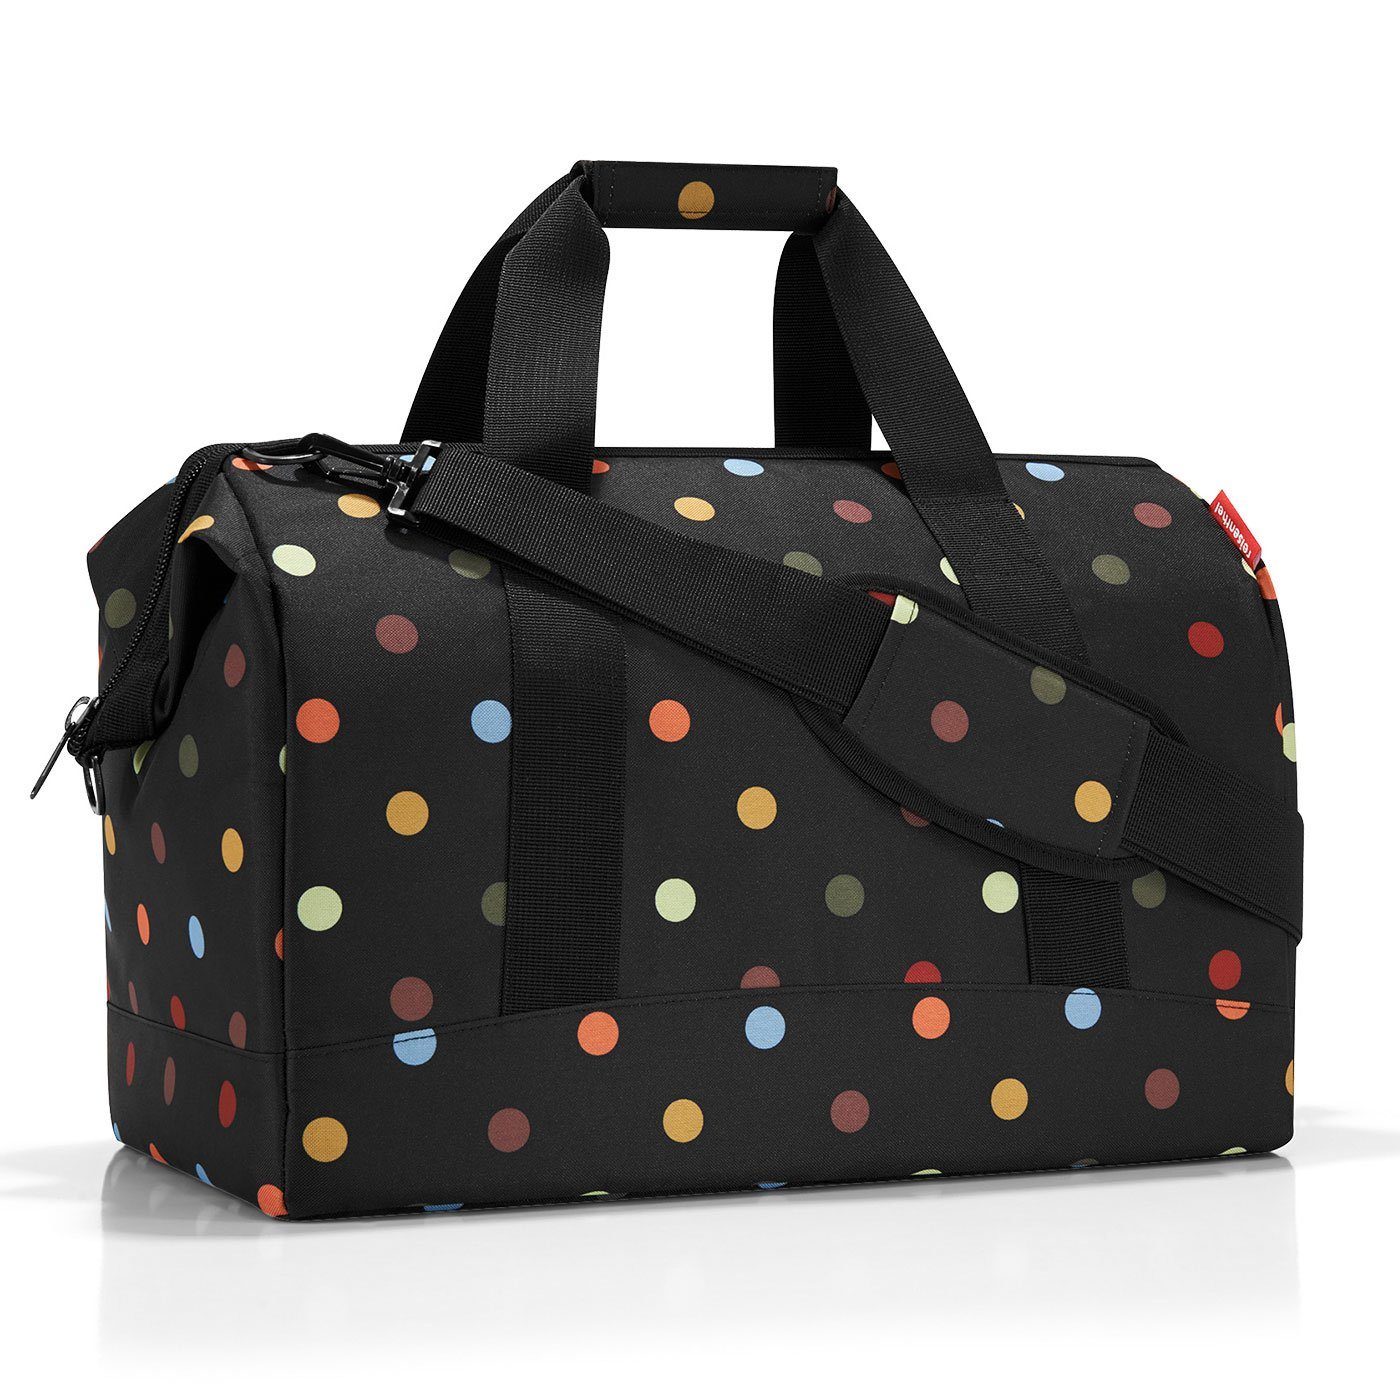 490ef98236a reisenthel allrounder L dots: Amazon.co.uk: Luggage